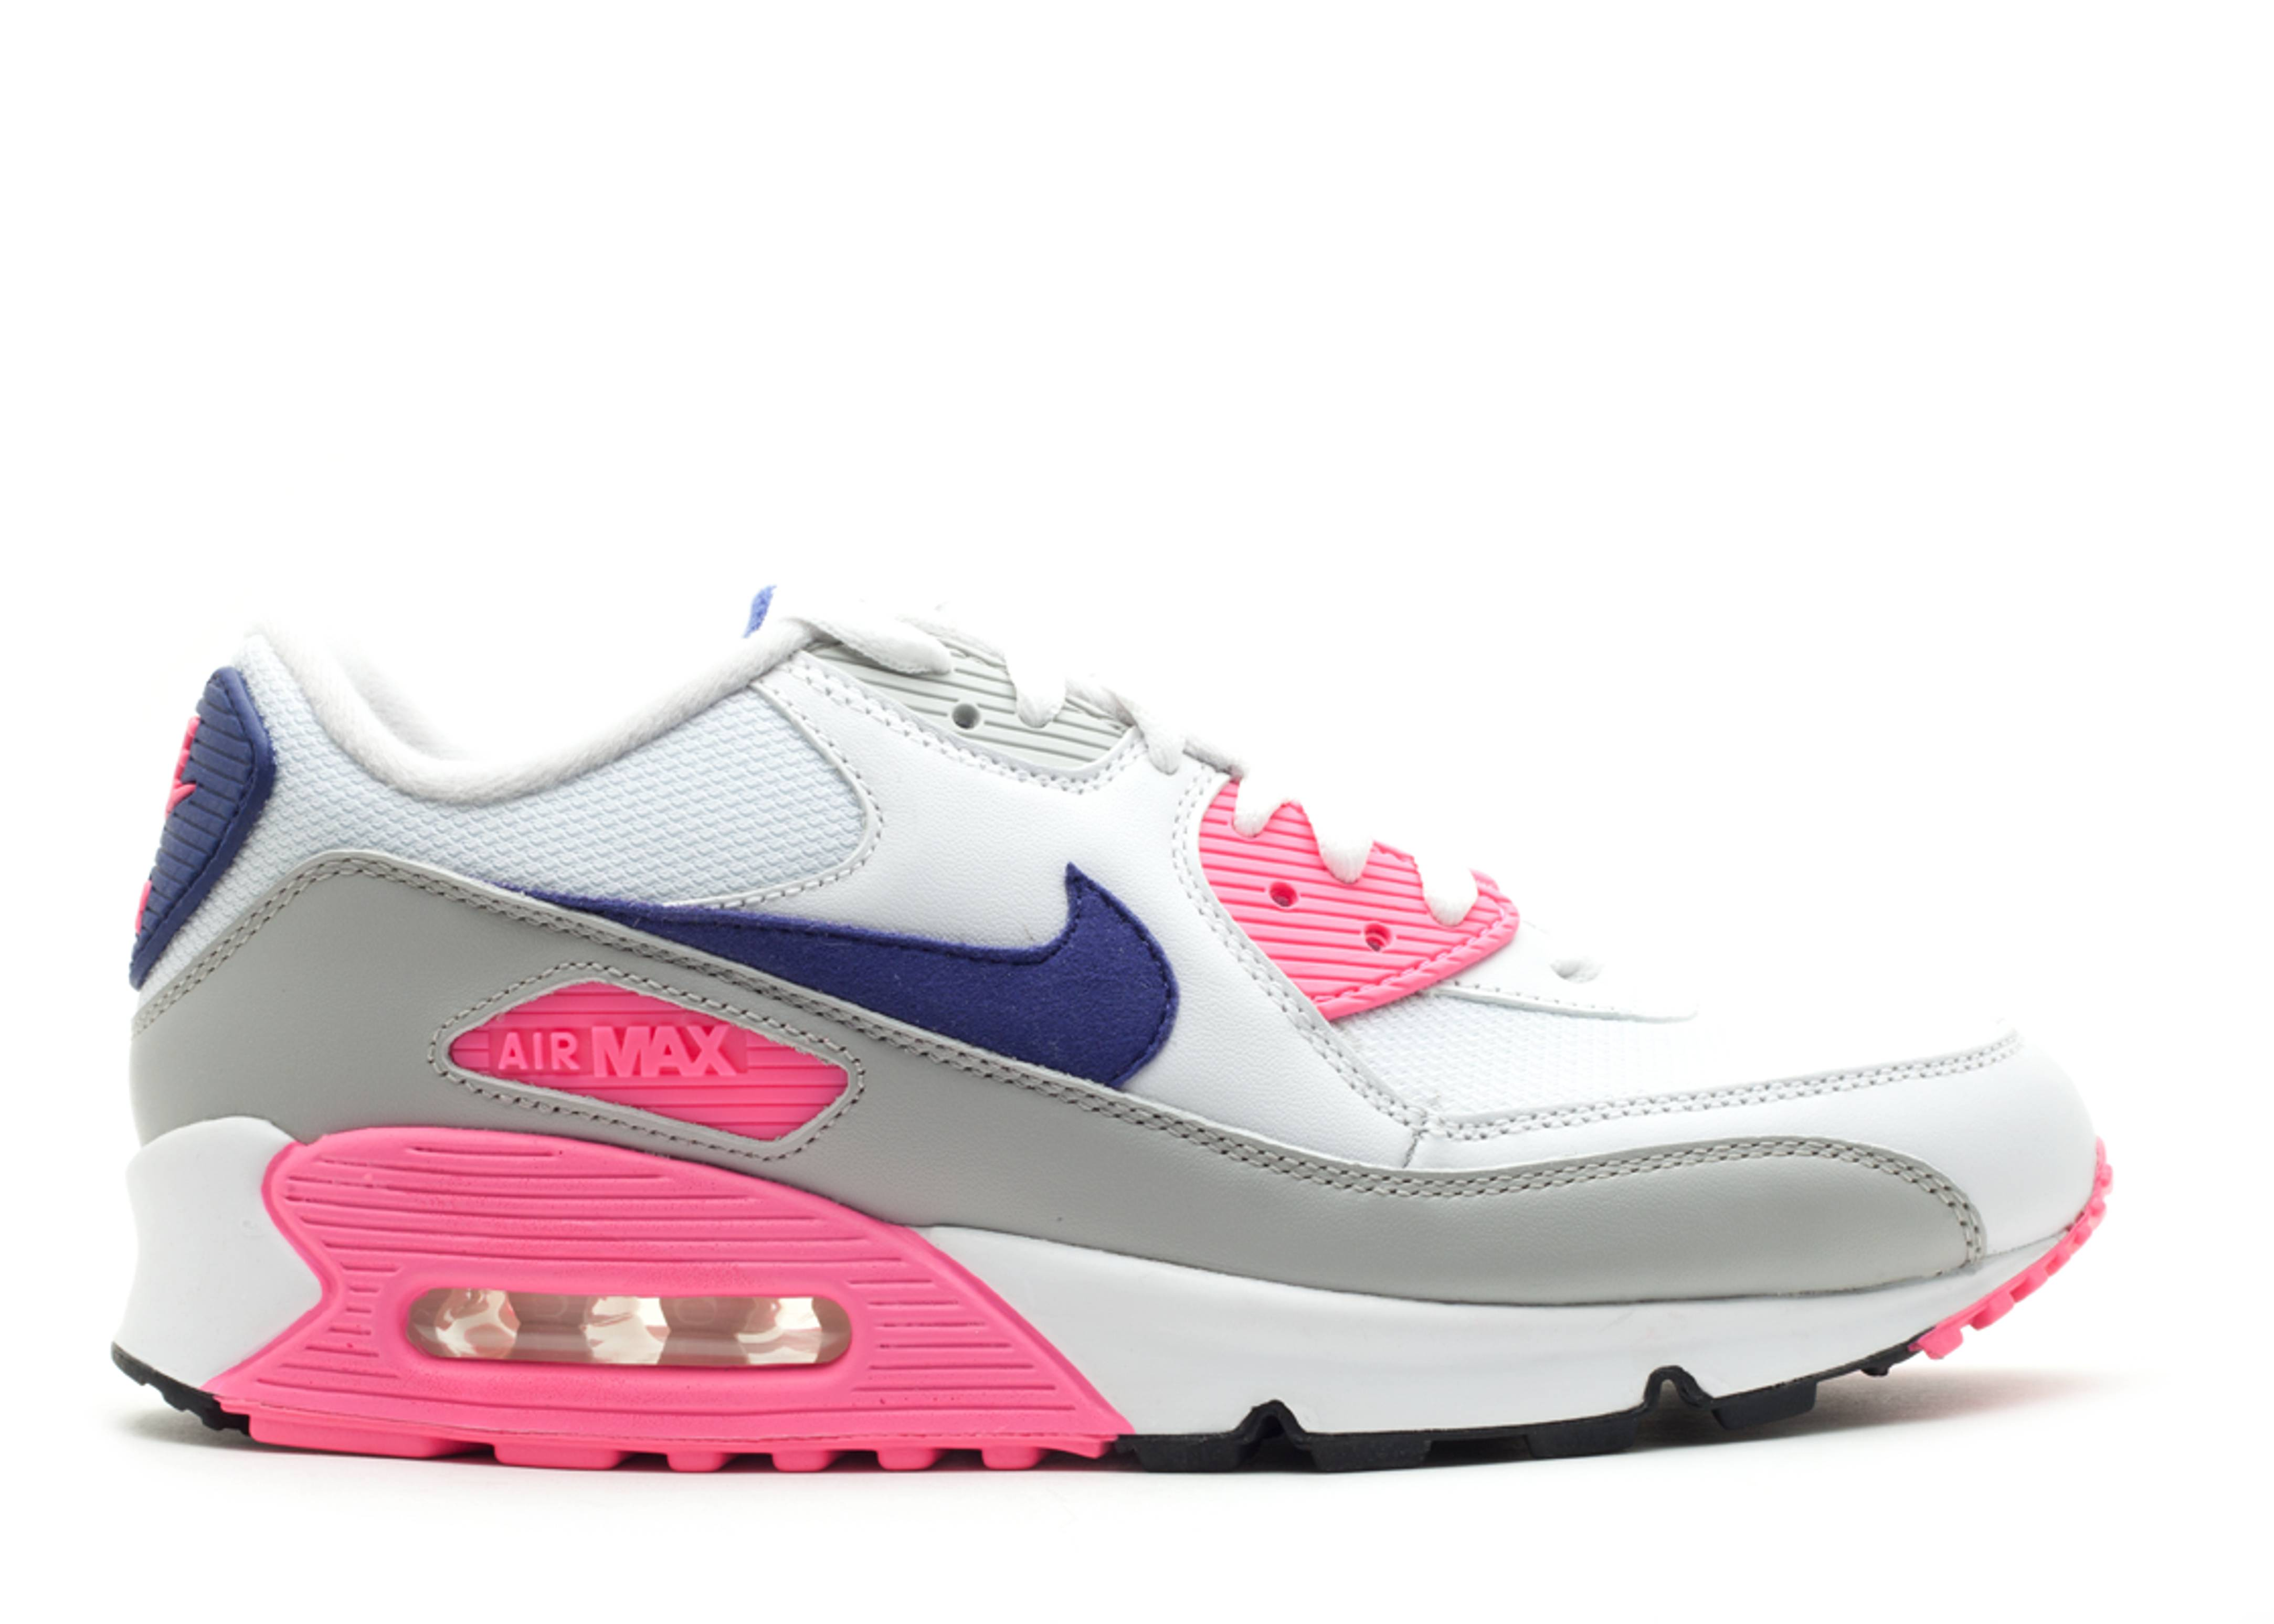 8e5fa54471 W's Air Max 90 - Nike - 325213 105 - white/asian concord-laser pink ...